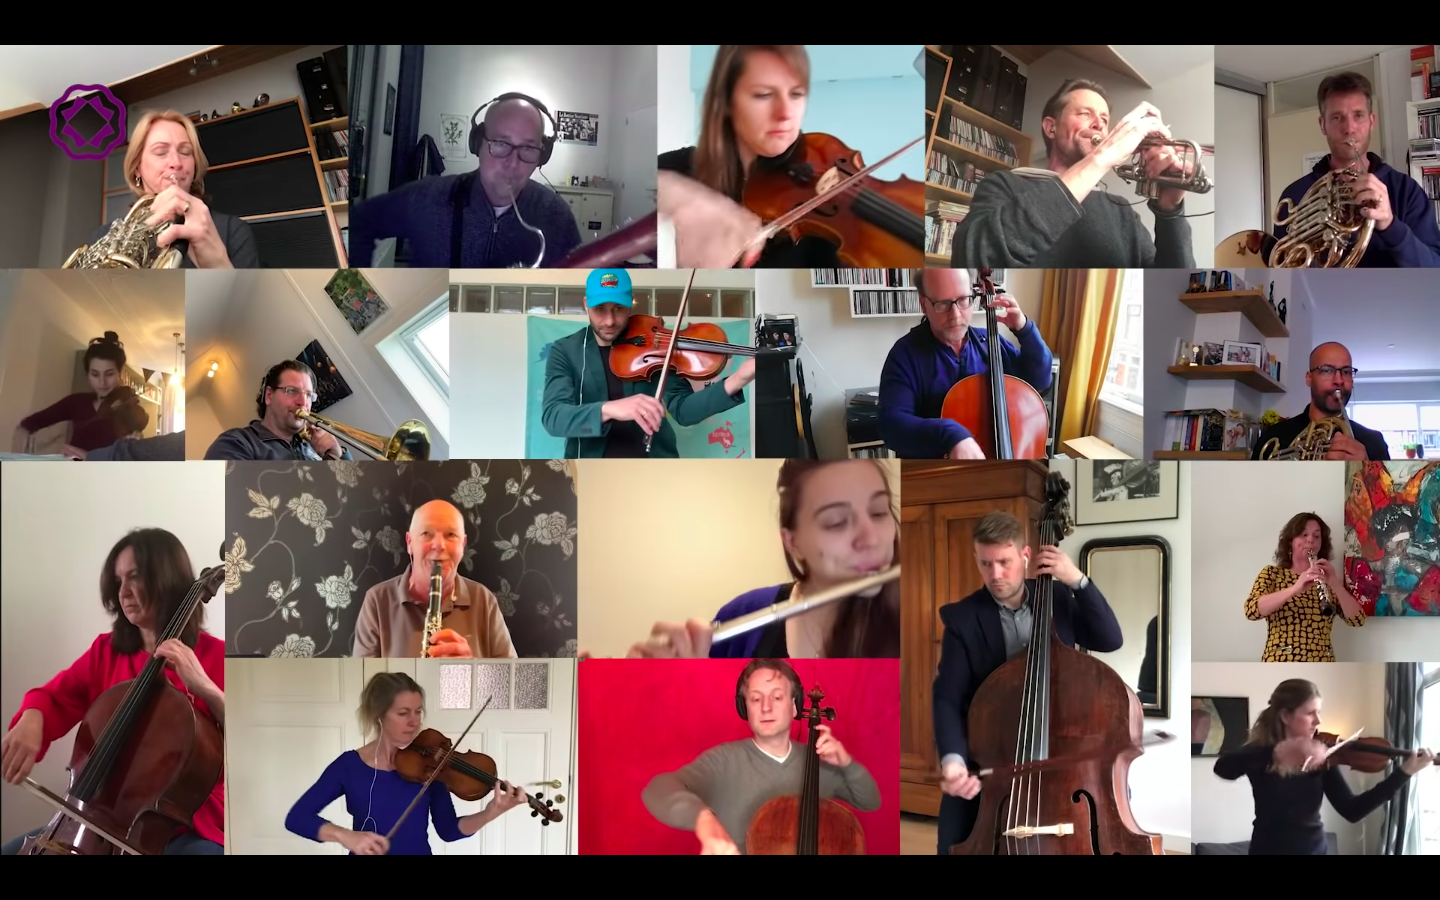 The Rotterdam Philharmonic give a Skype performance of Beethoven's 9th Symphony